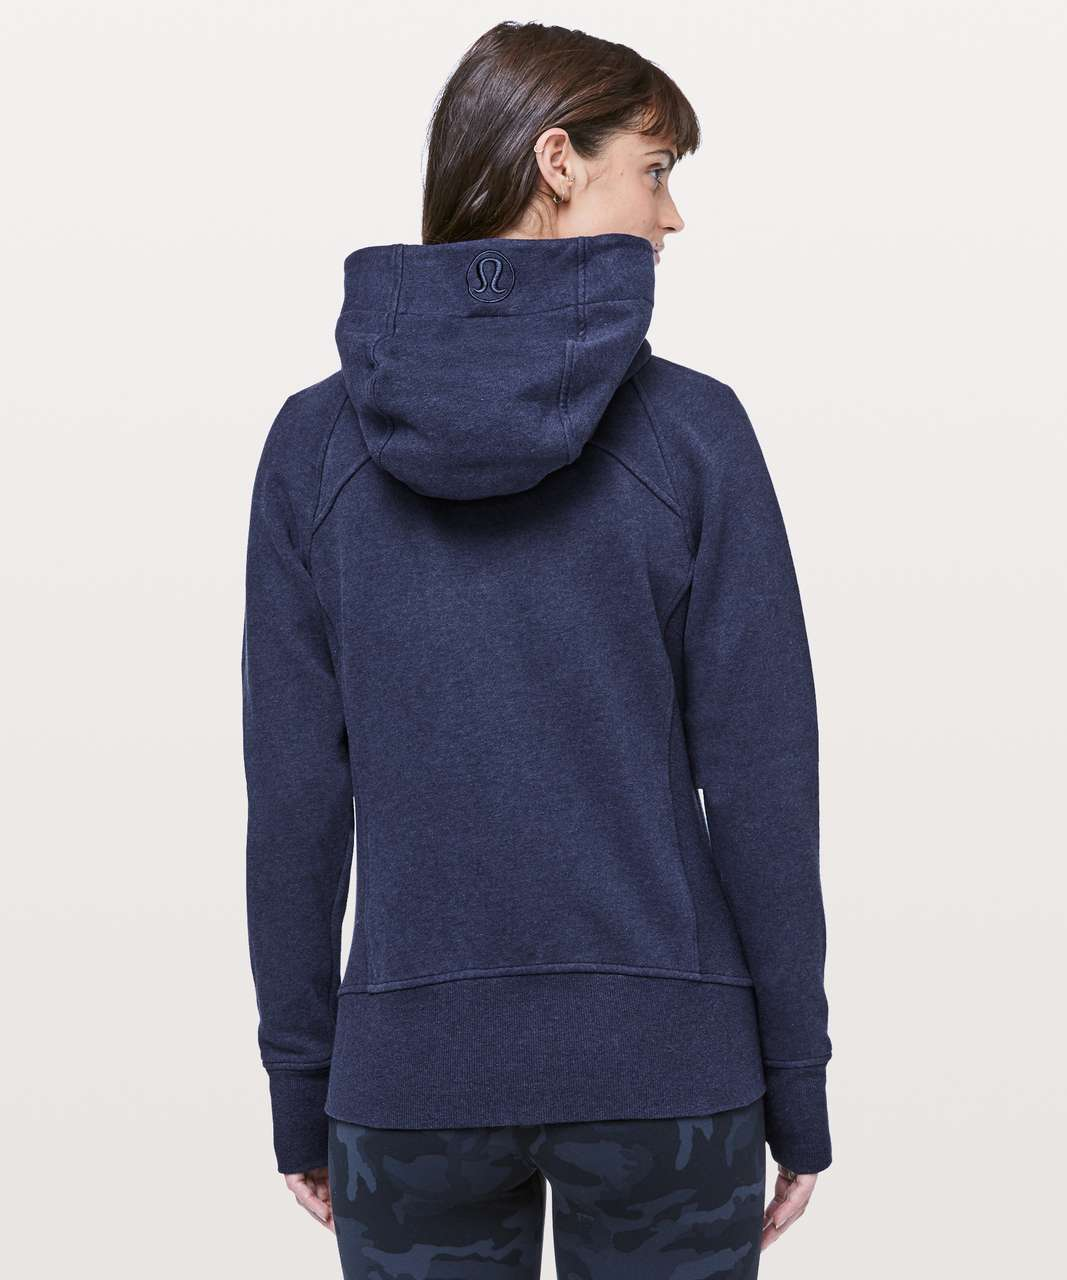 Lululemon Scuba Hoodie *Light Cotton Fleece - Heathered Hero Blue